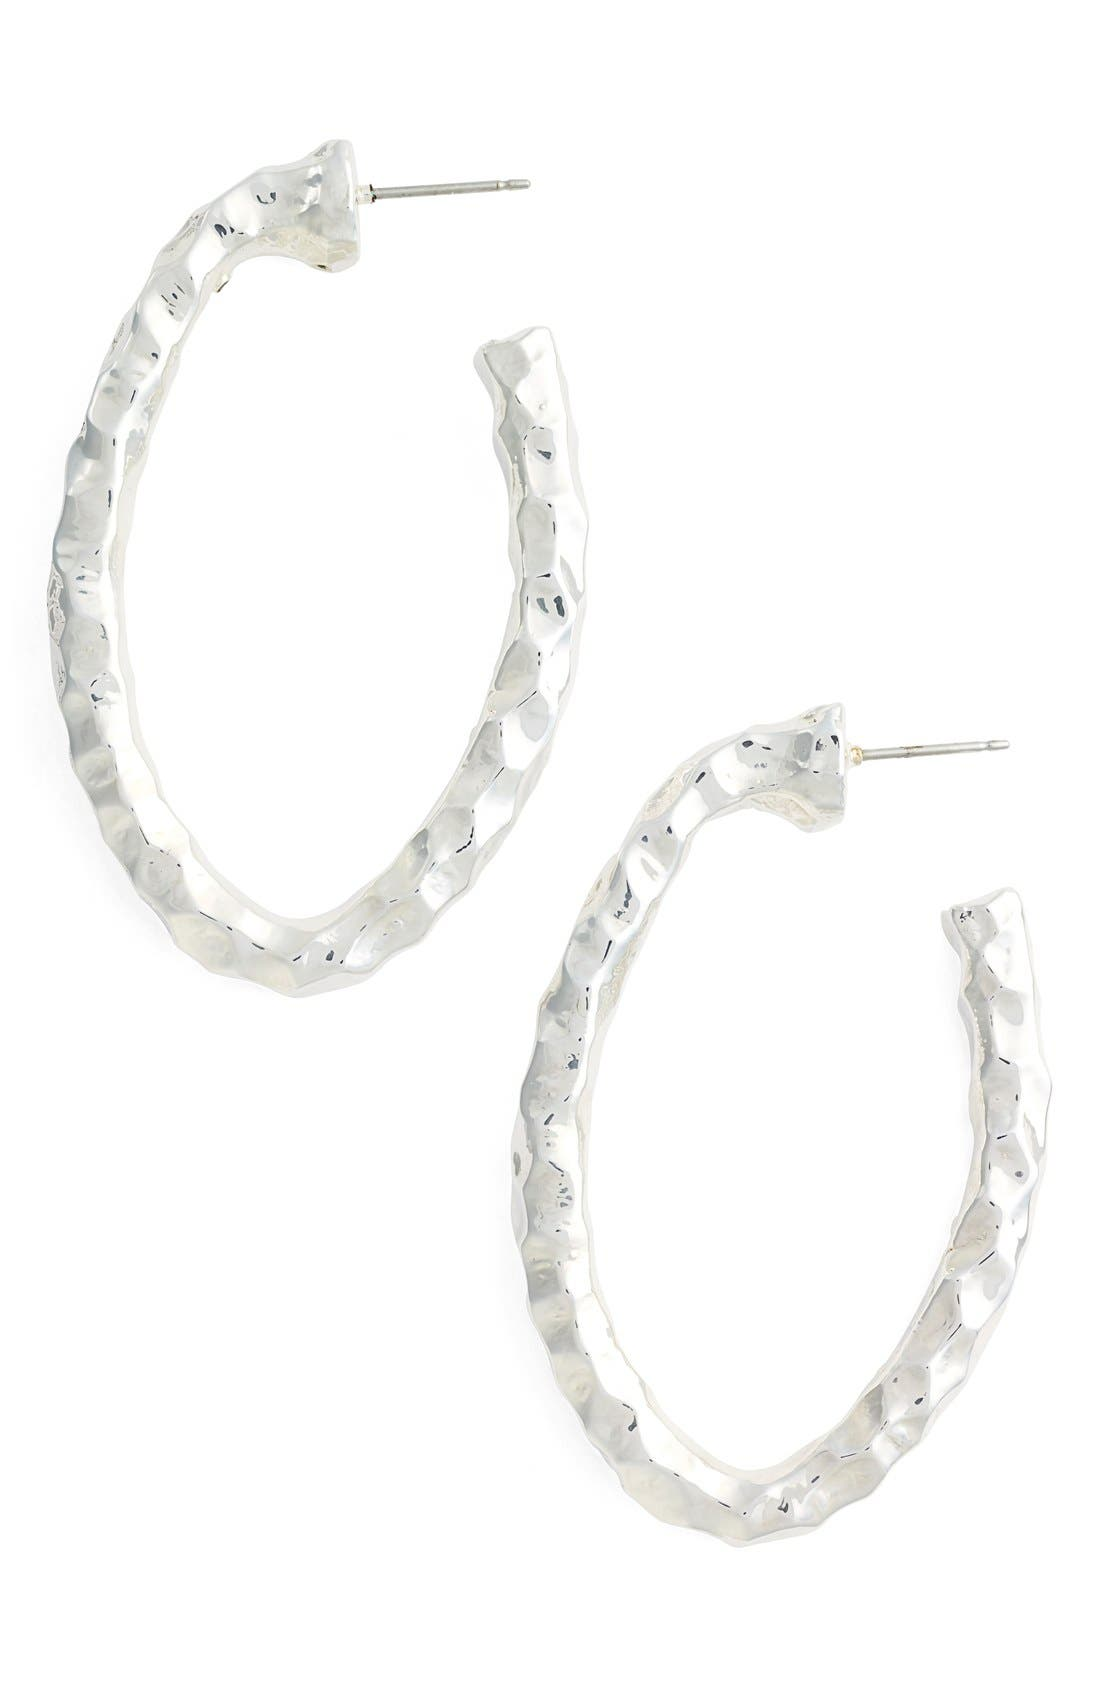 Simon Sebbag Hammered Hoop Earrings